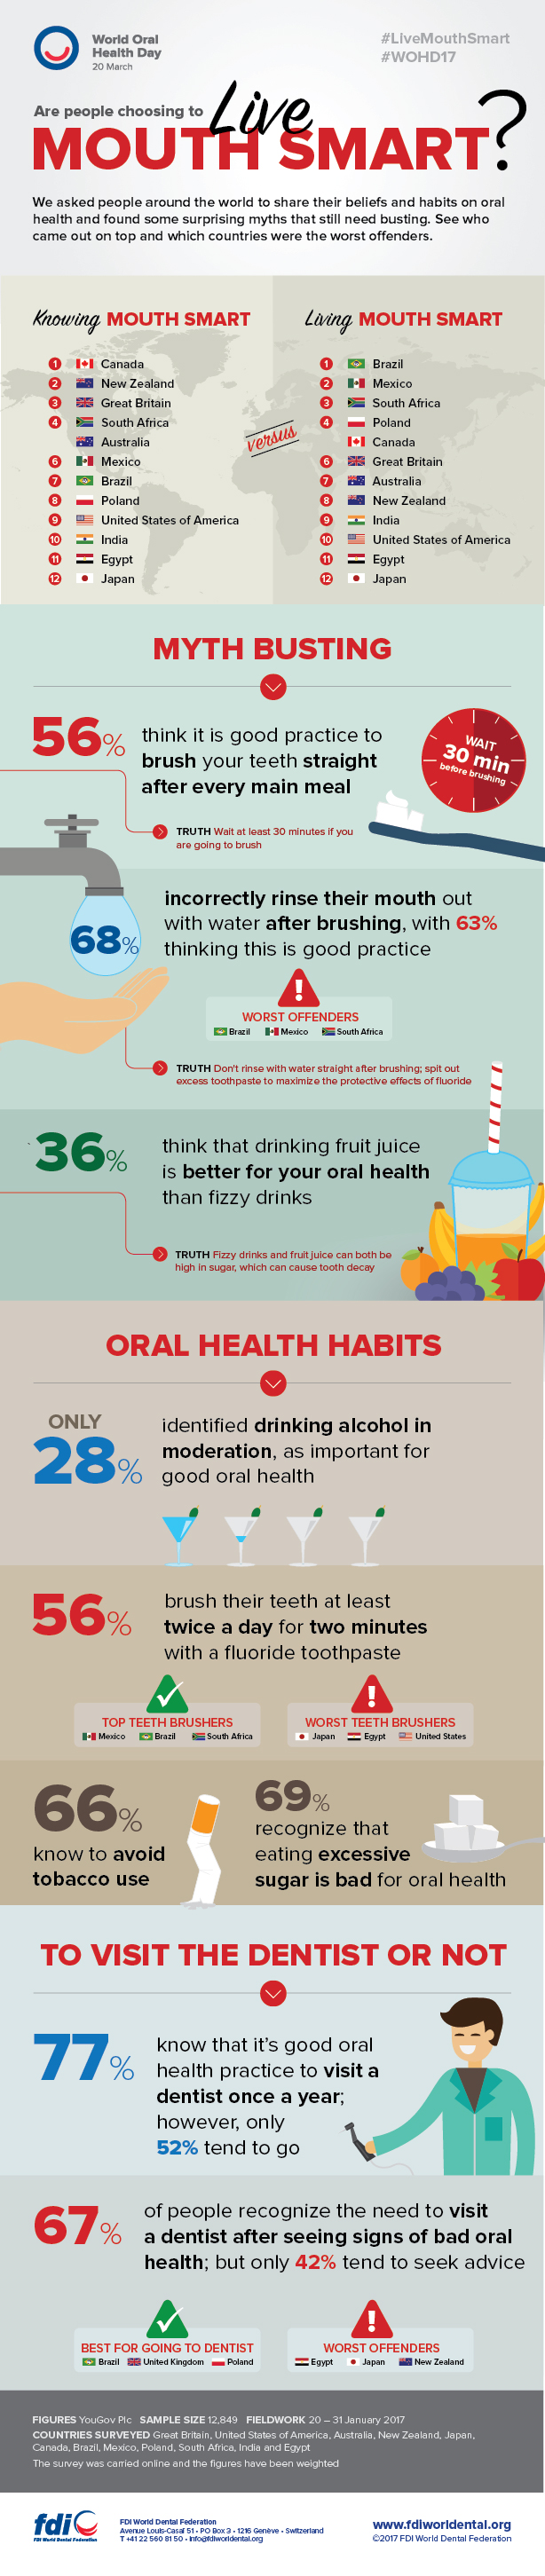 World Oral Health Day Infographic